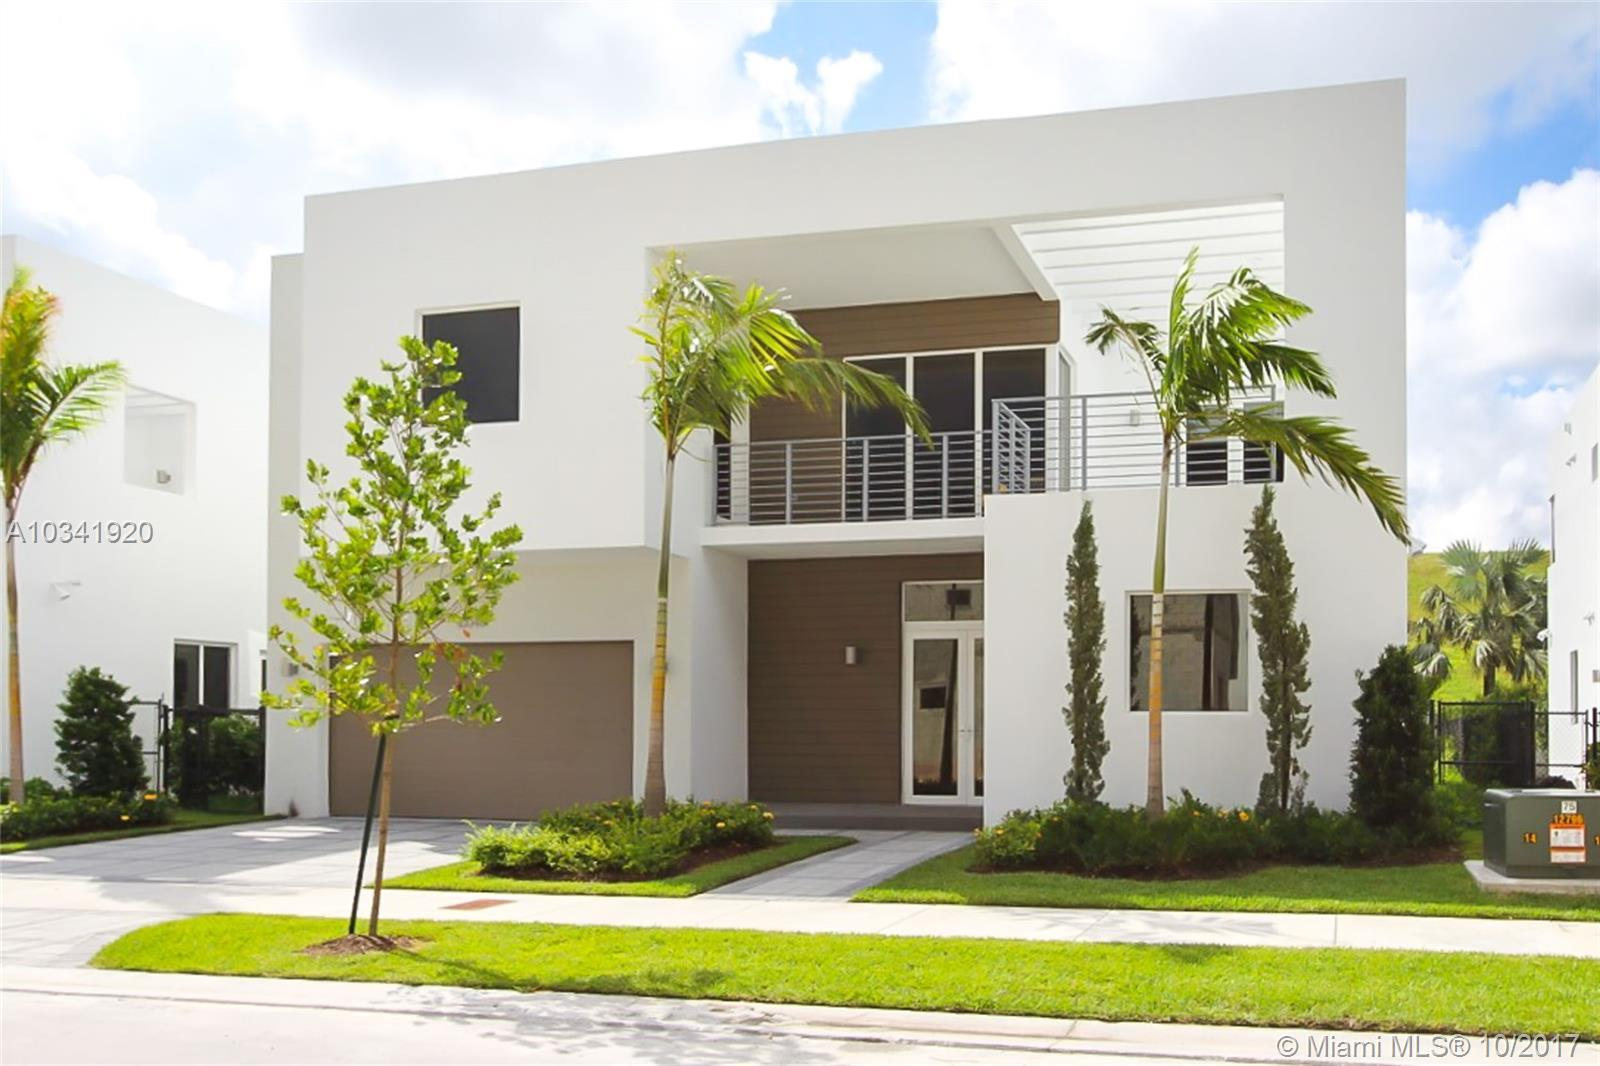 9960 nw 74th ter doral fl mls a10341920 better for 5720 nw 194 terrace